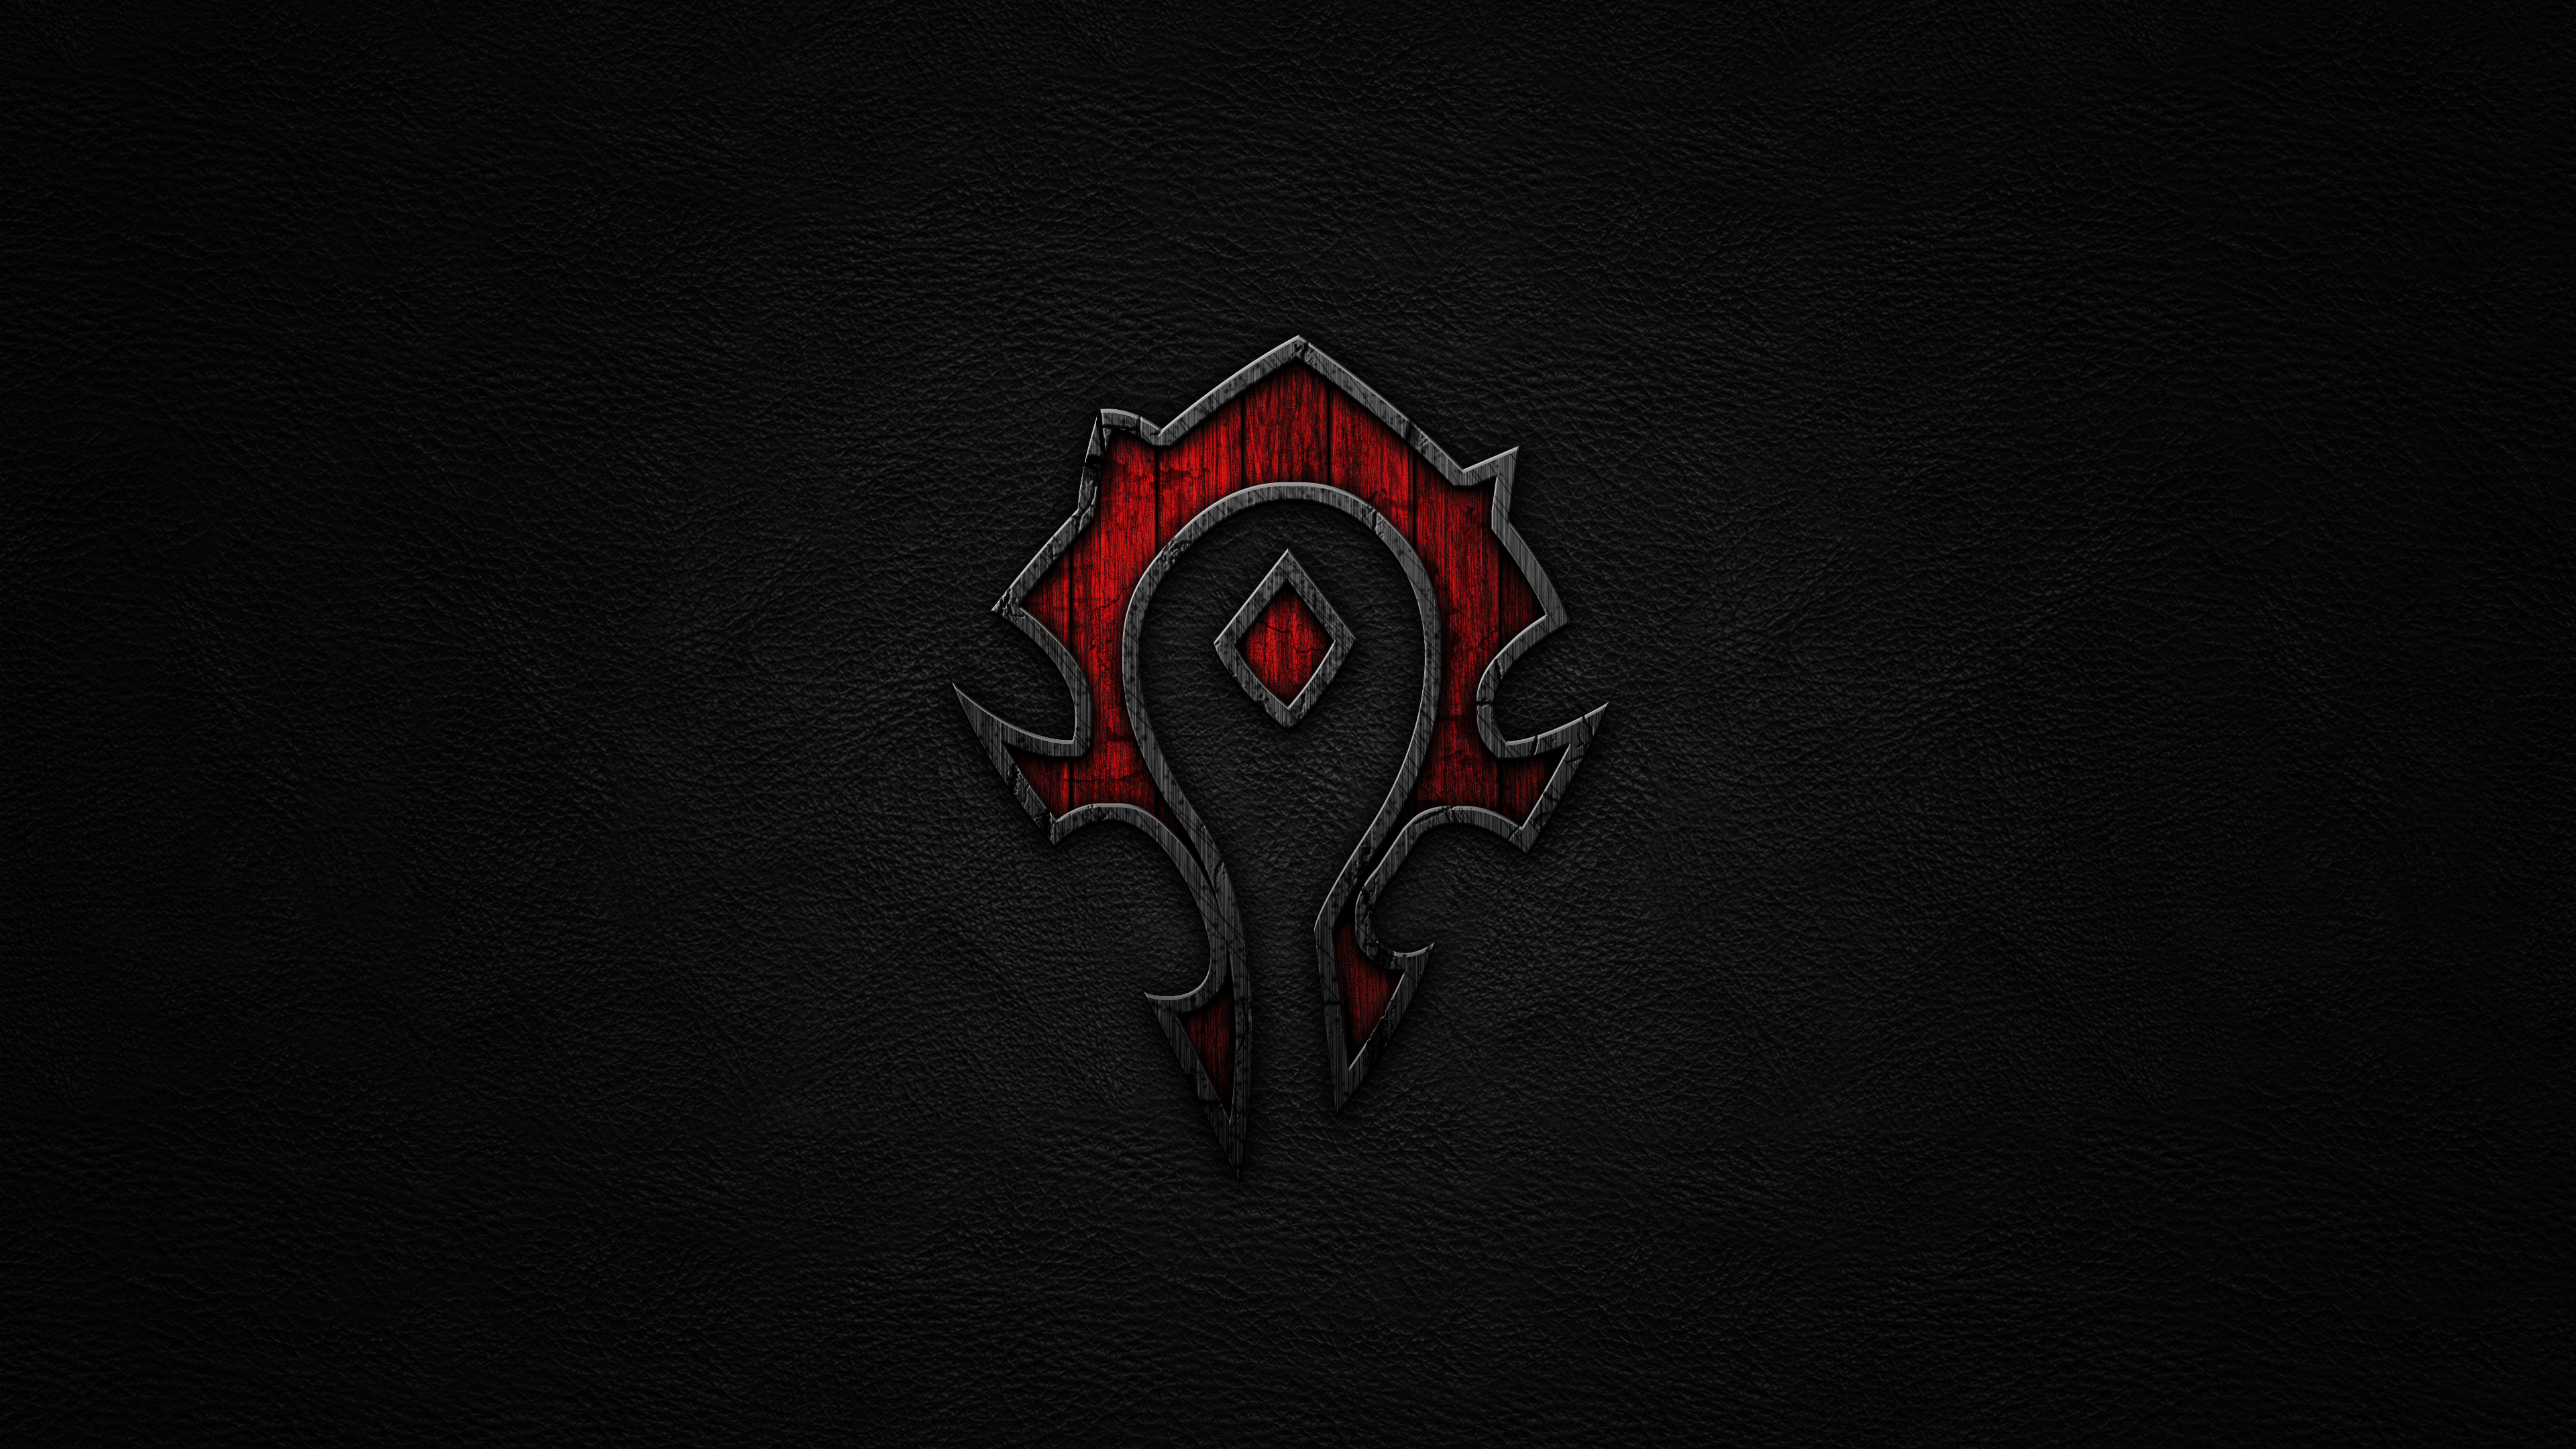 For The Horde Free Download Wallpaper By Studiovulcan Jordan Logo Wallpaper Logo Wallpaper Hd For The Horde